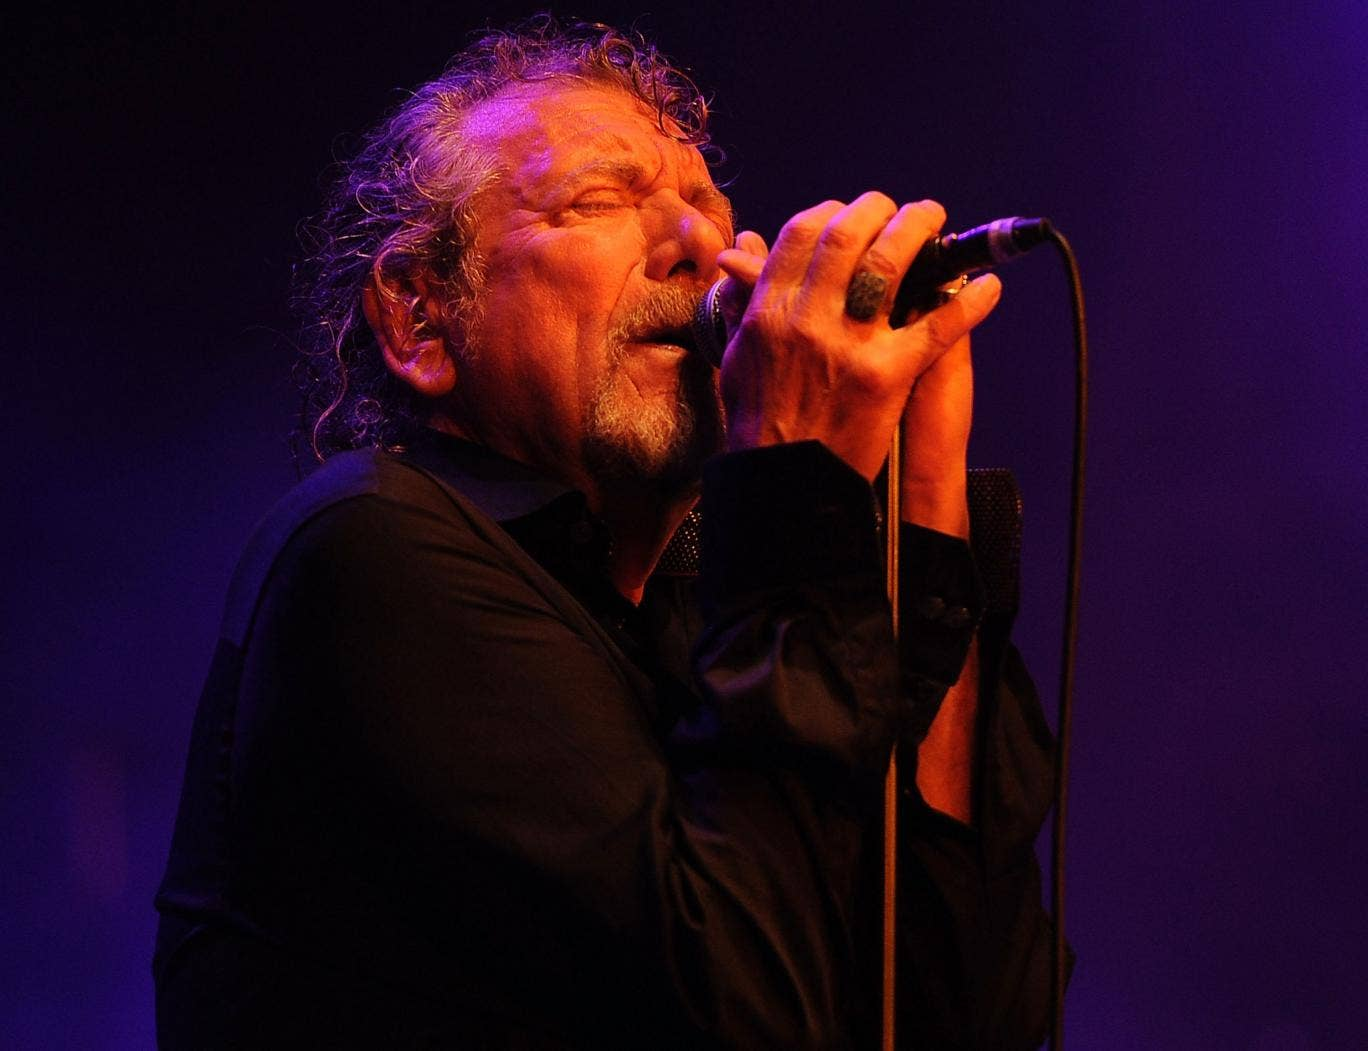 Robert Plant performs with the Sensational Space Shifters